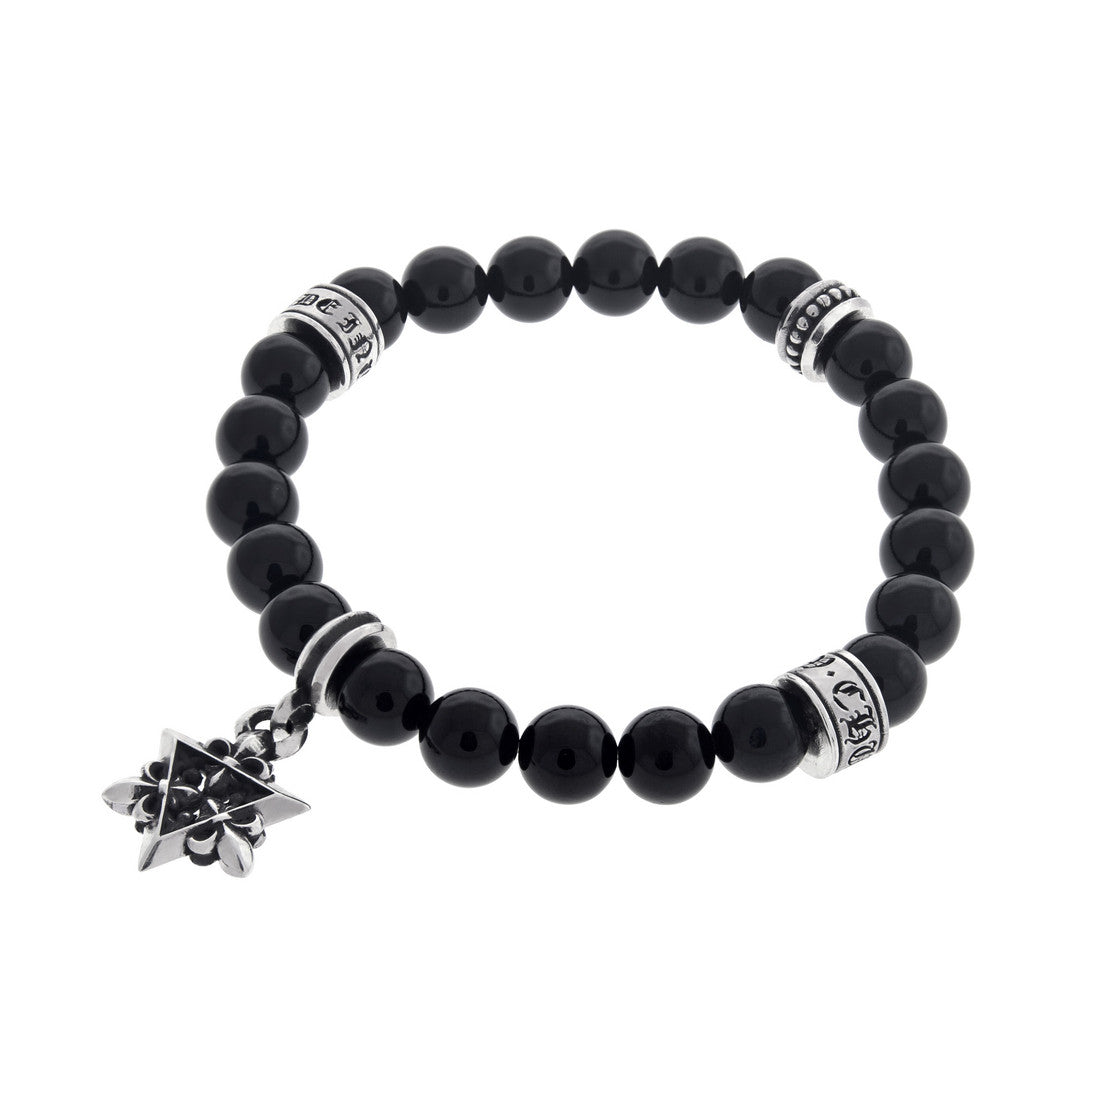 Buddha Onyx Bead Bracelet with Silver Star of David Charm